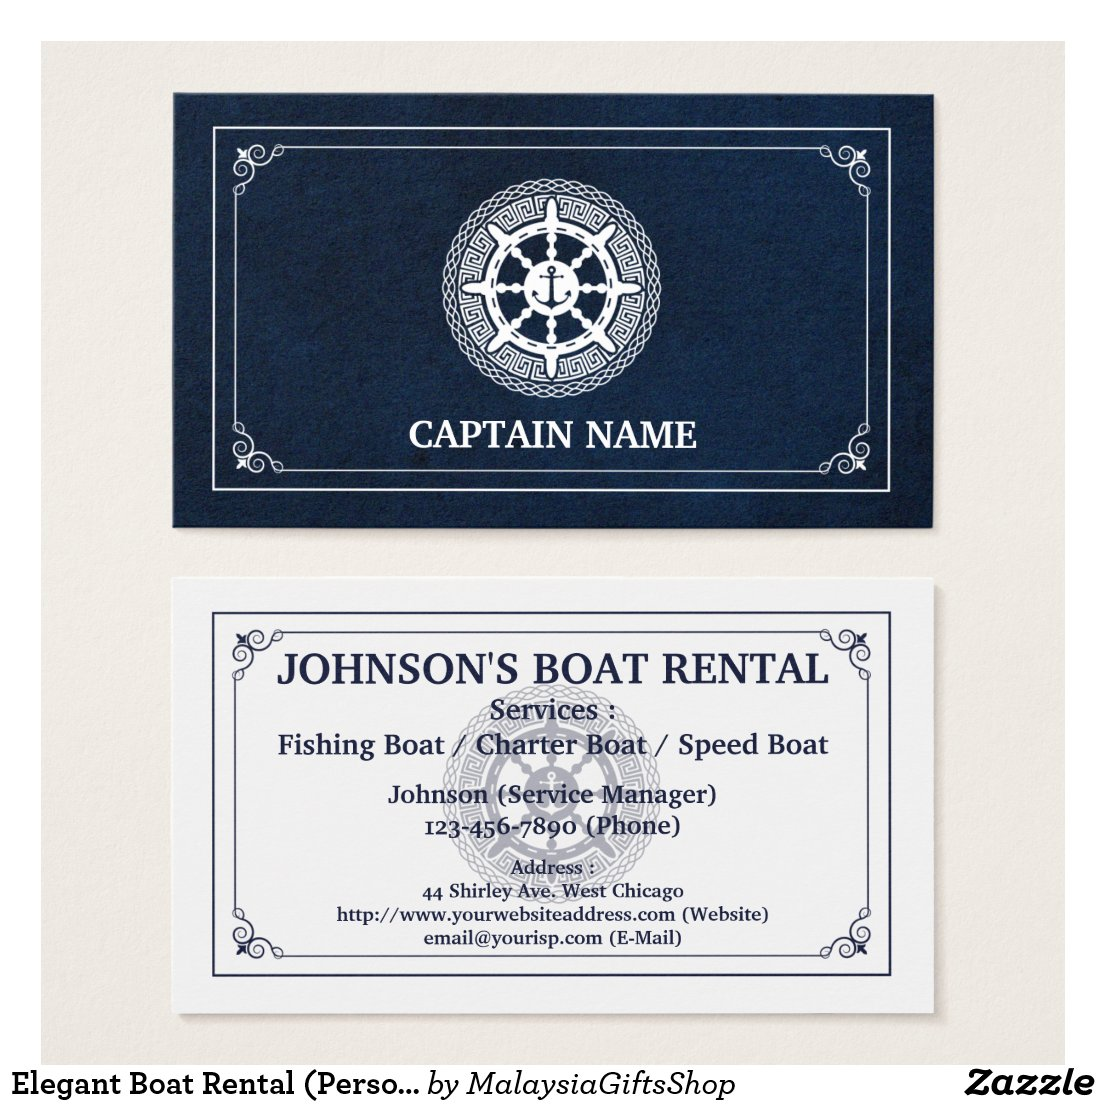 Elegant Boat Rental (Personalize) Business Card